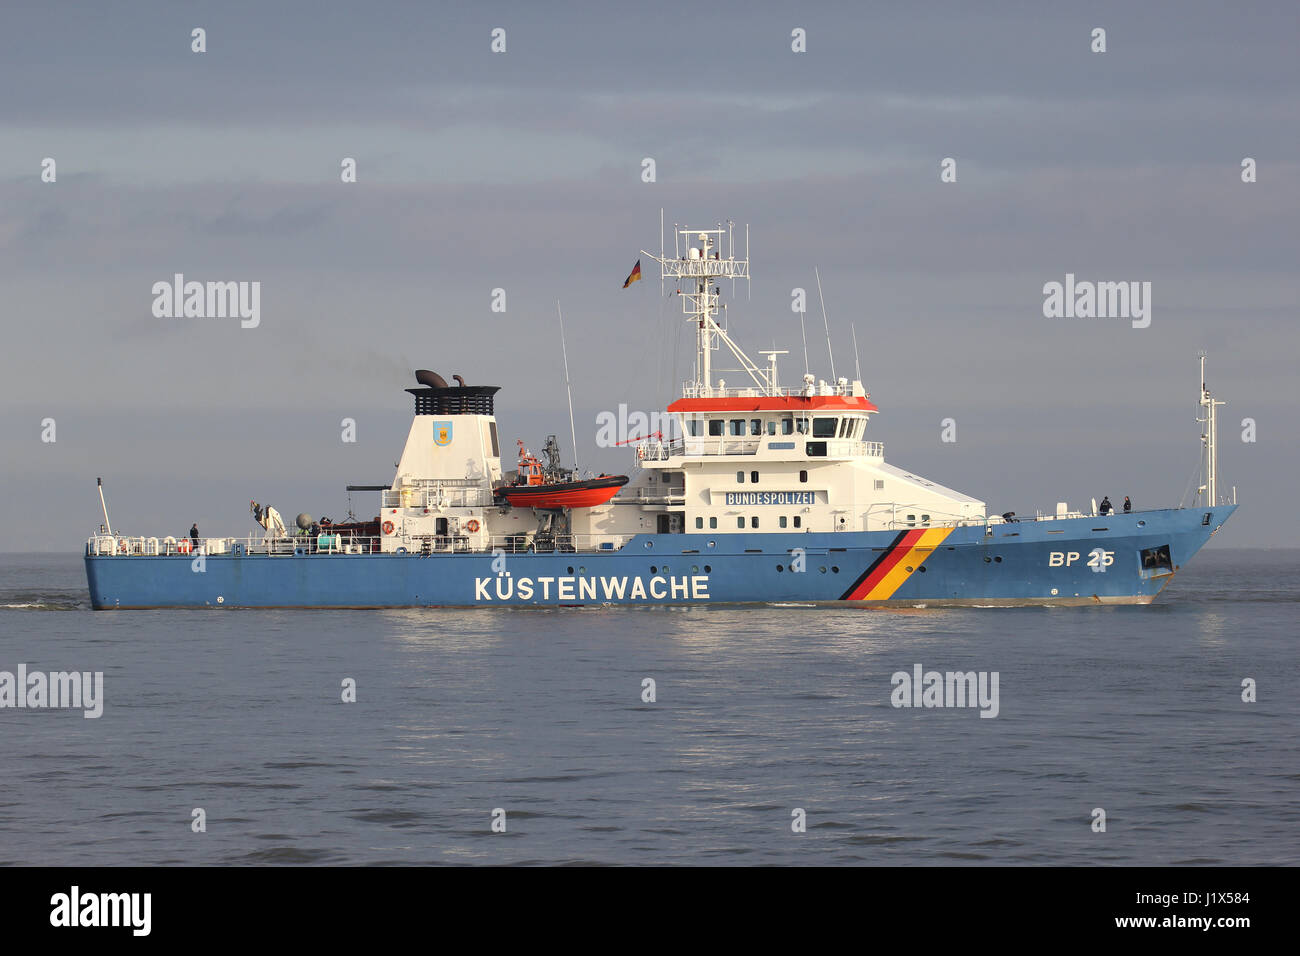 German Federal Police boat BP25 BAYREUTH on the river Elbe. The Kustenwache is an association of several federal - Stock Image